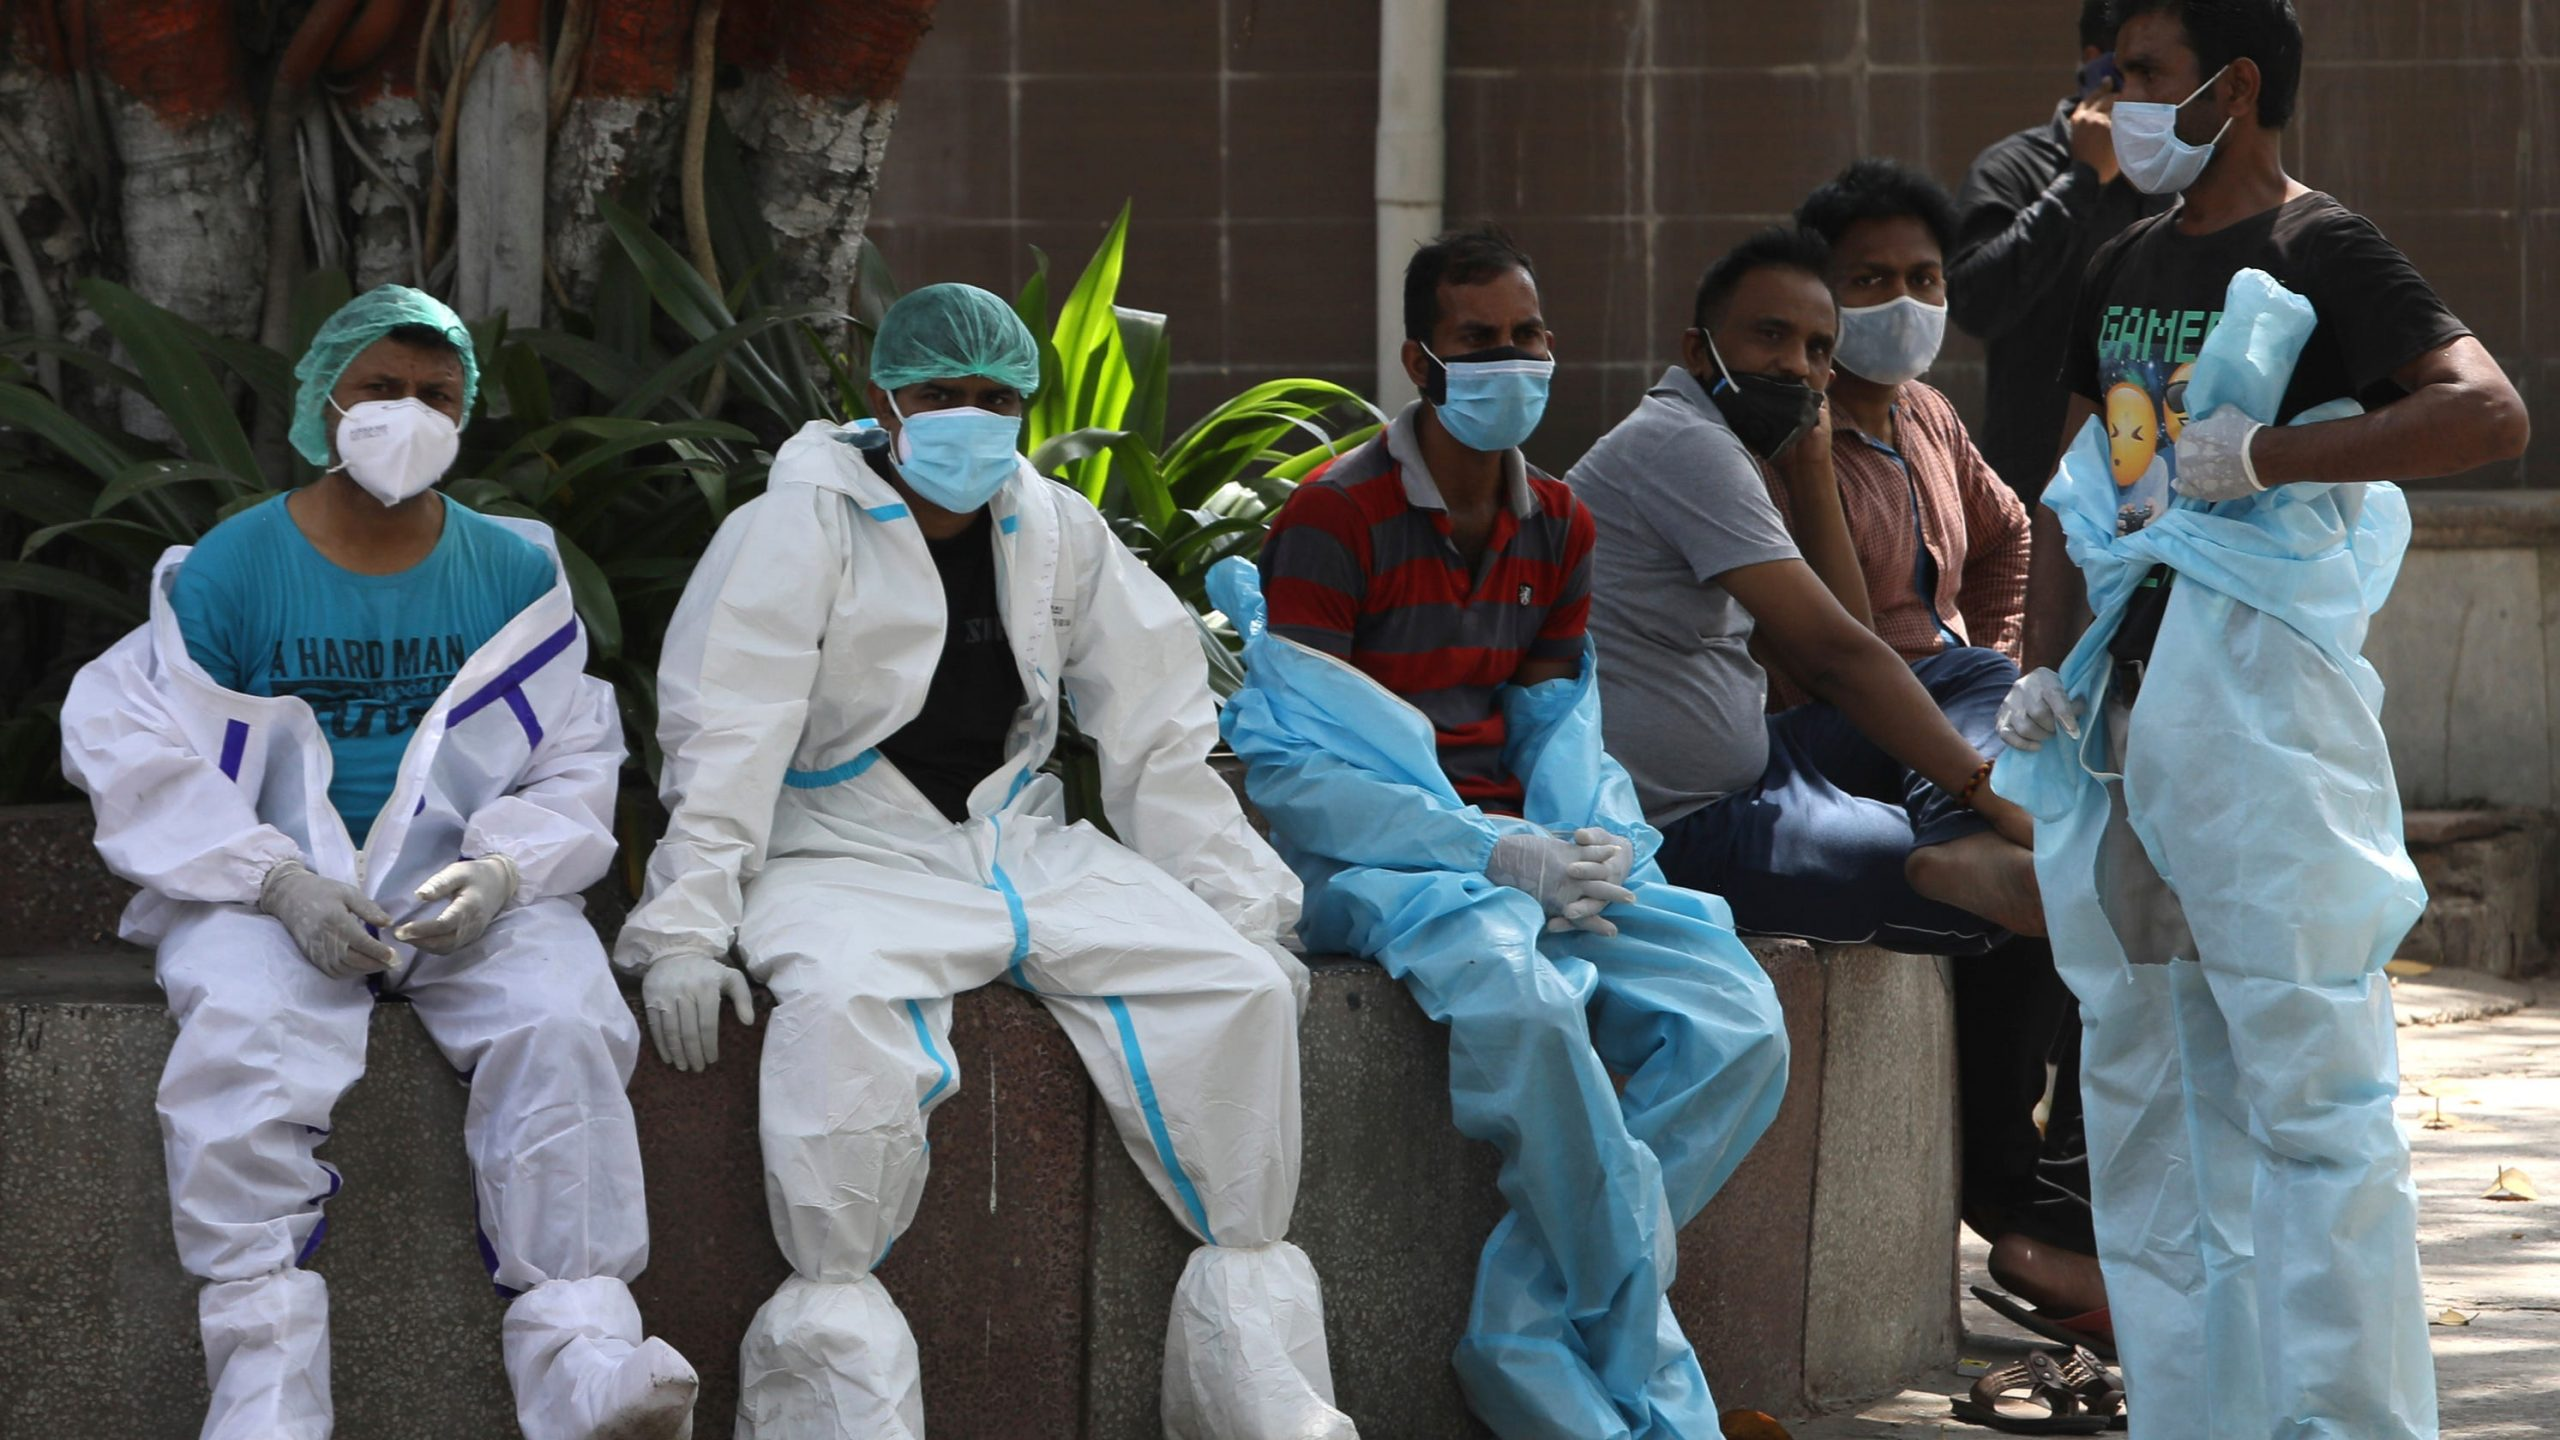 india-running-out-of-oxygen-hospital-beds-amid-unrelenting-covid-19-surge.JPG